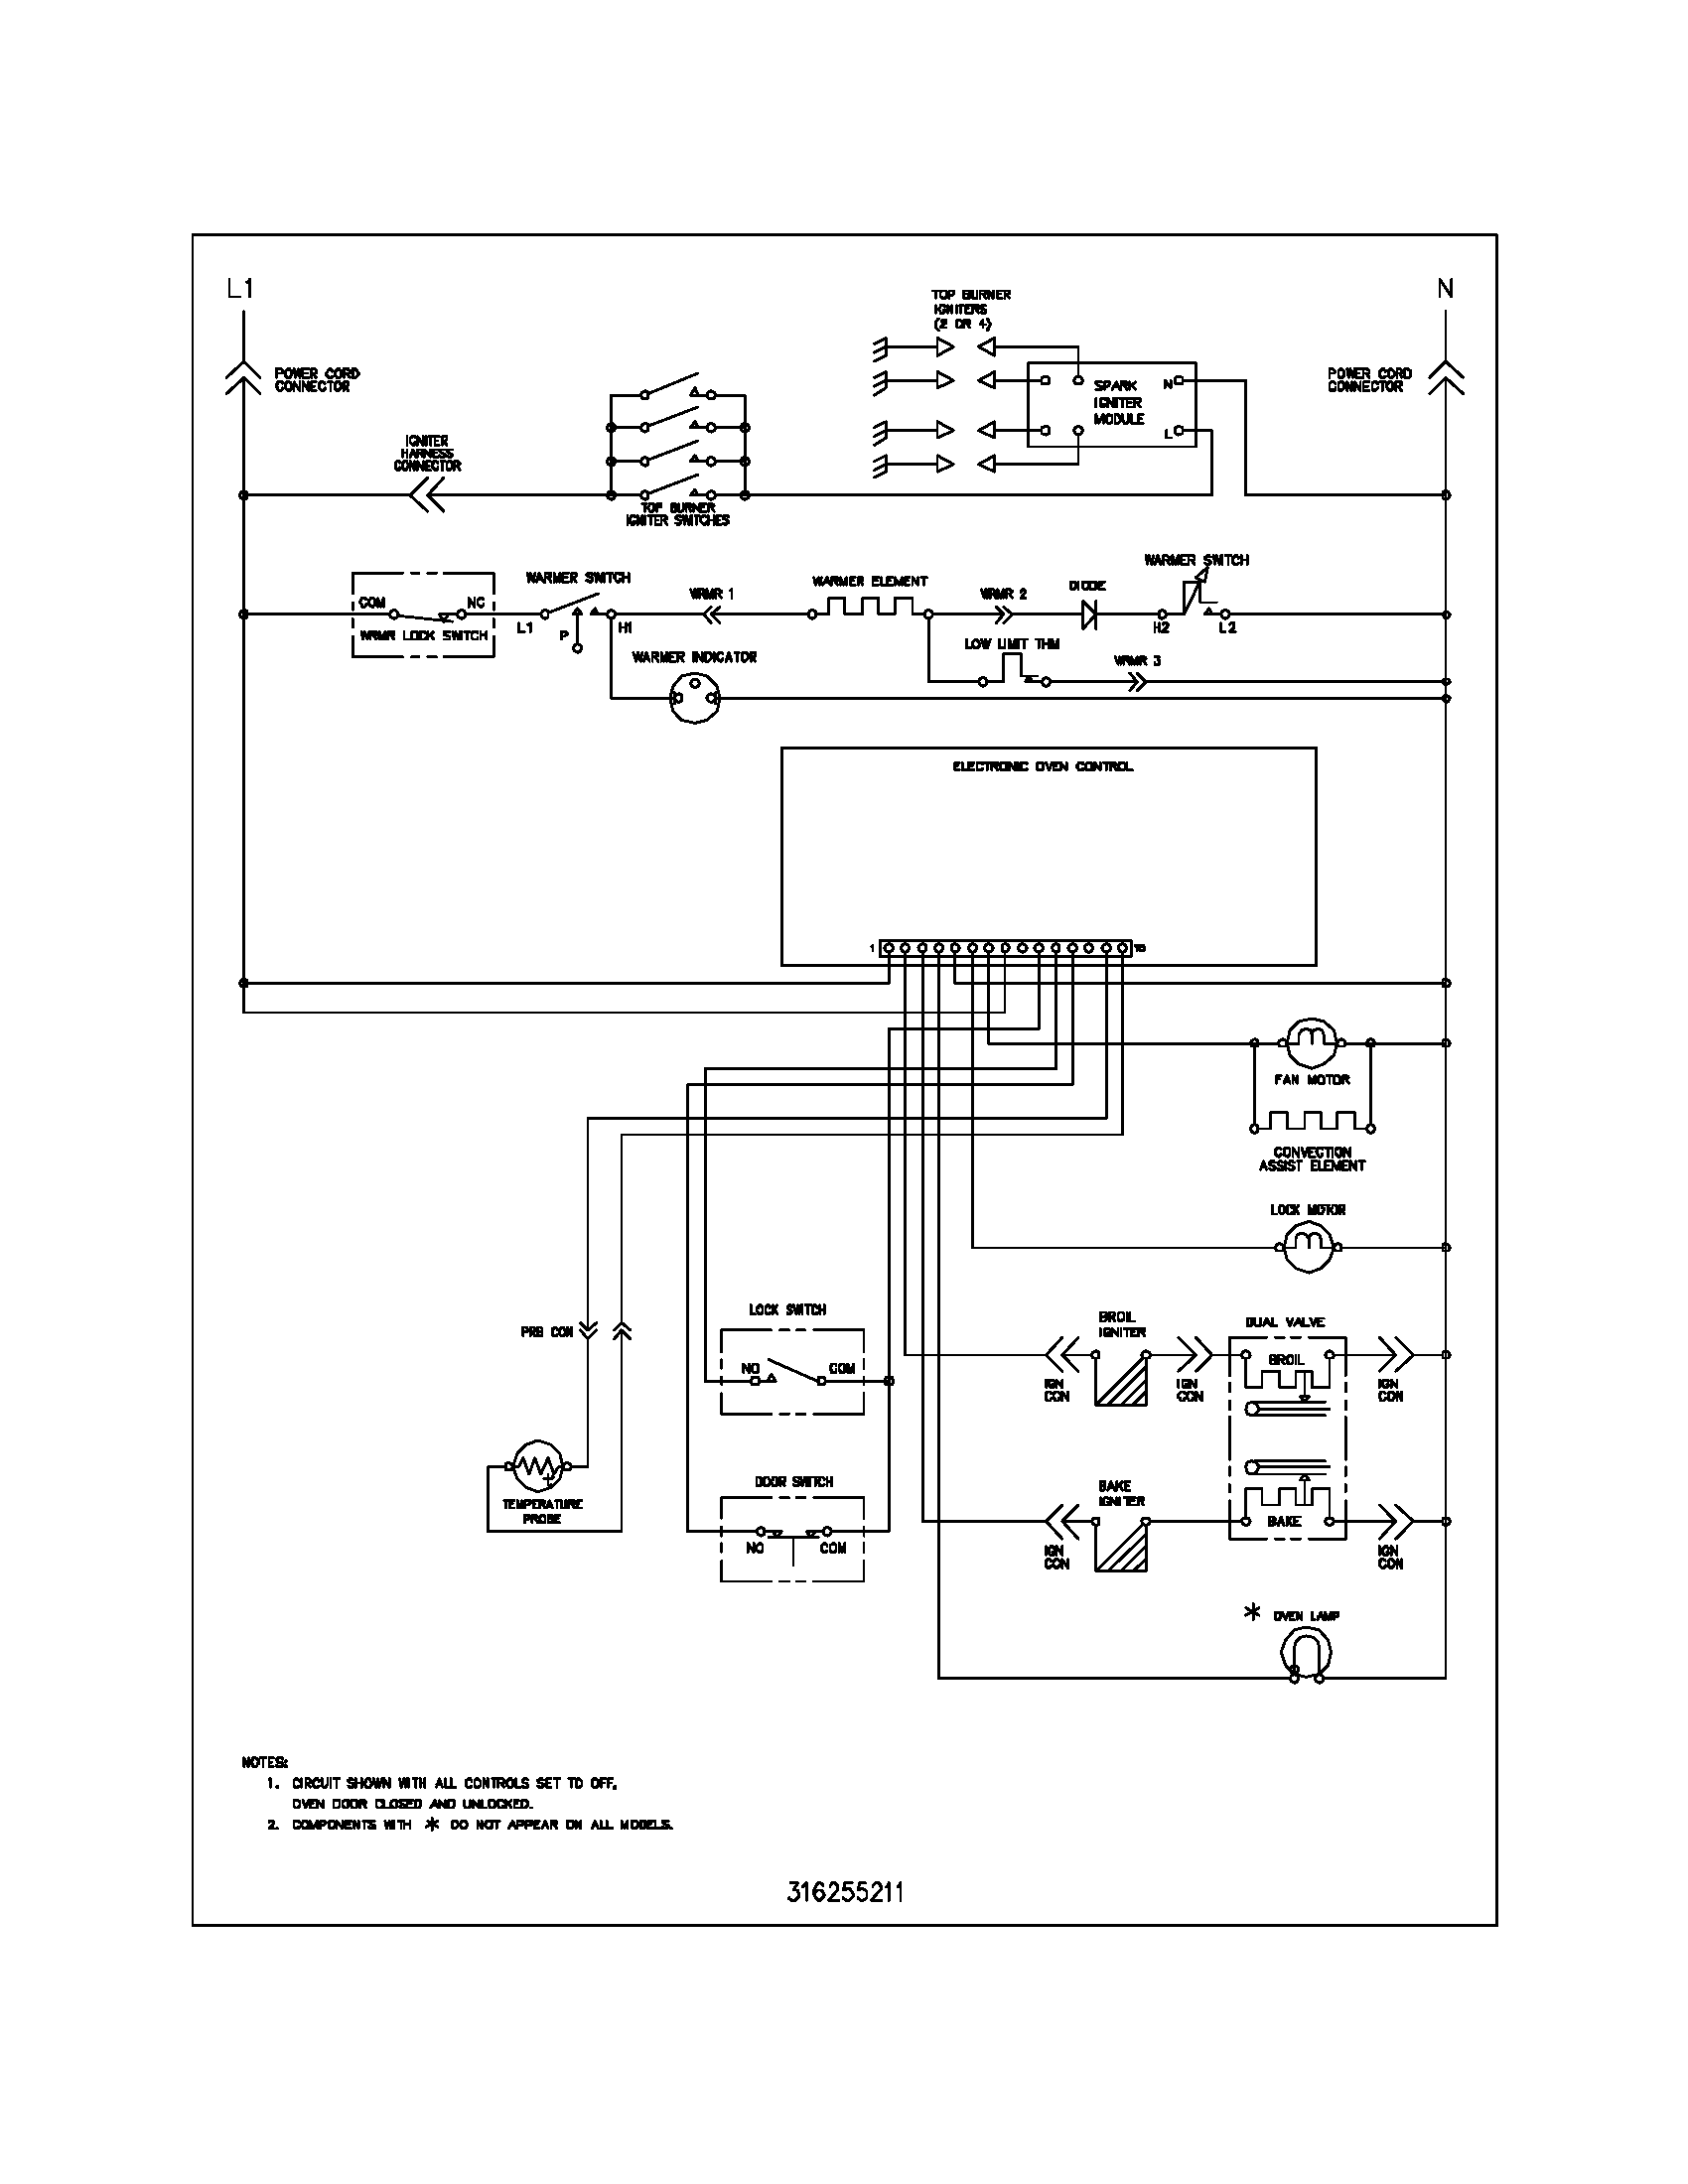 wiring schematic parts frigidaire plgf389ccc gas range timer stove clocks and appliance frigidaire freezer wiring diagram at edmiracle.co